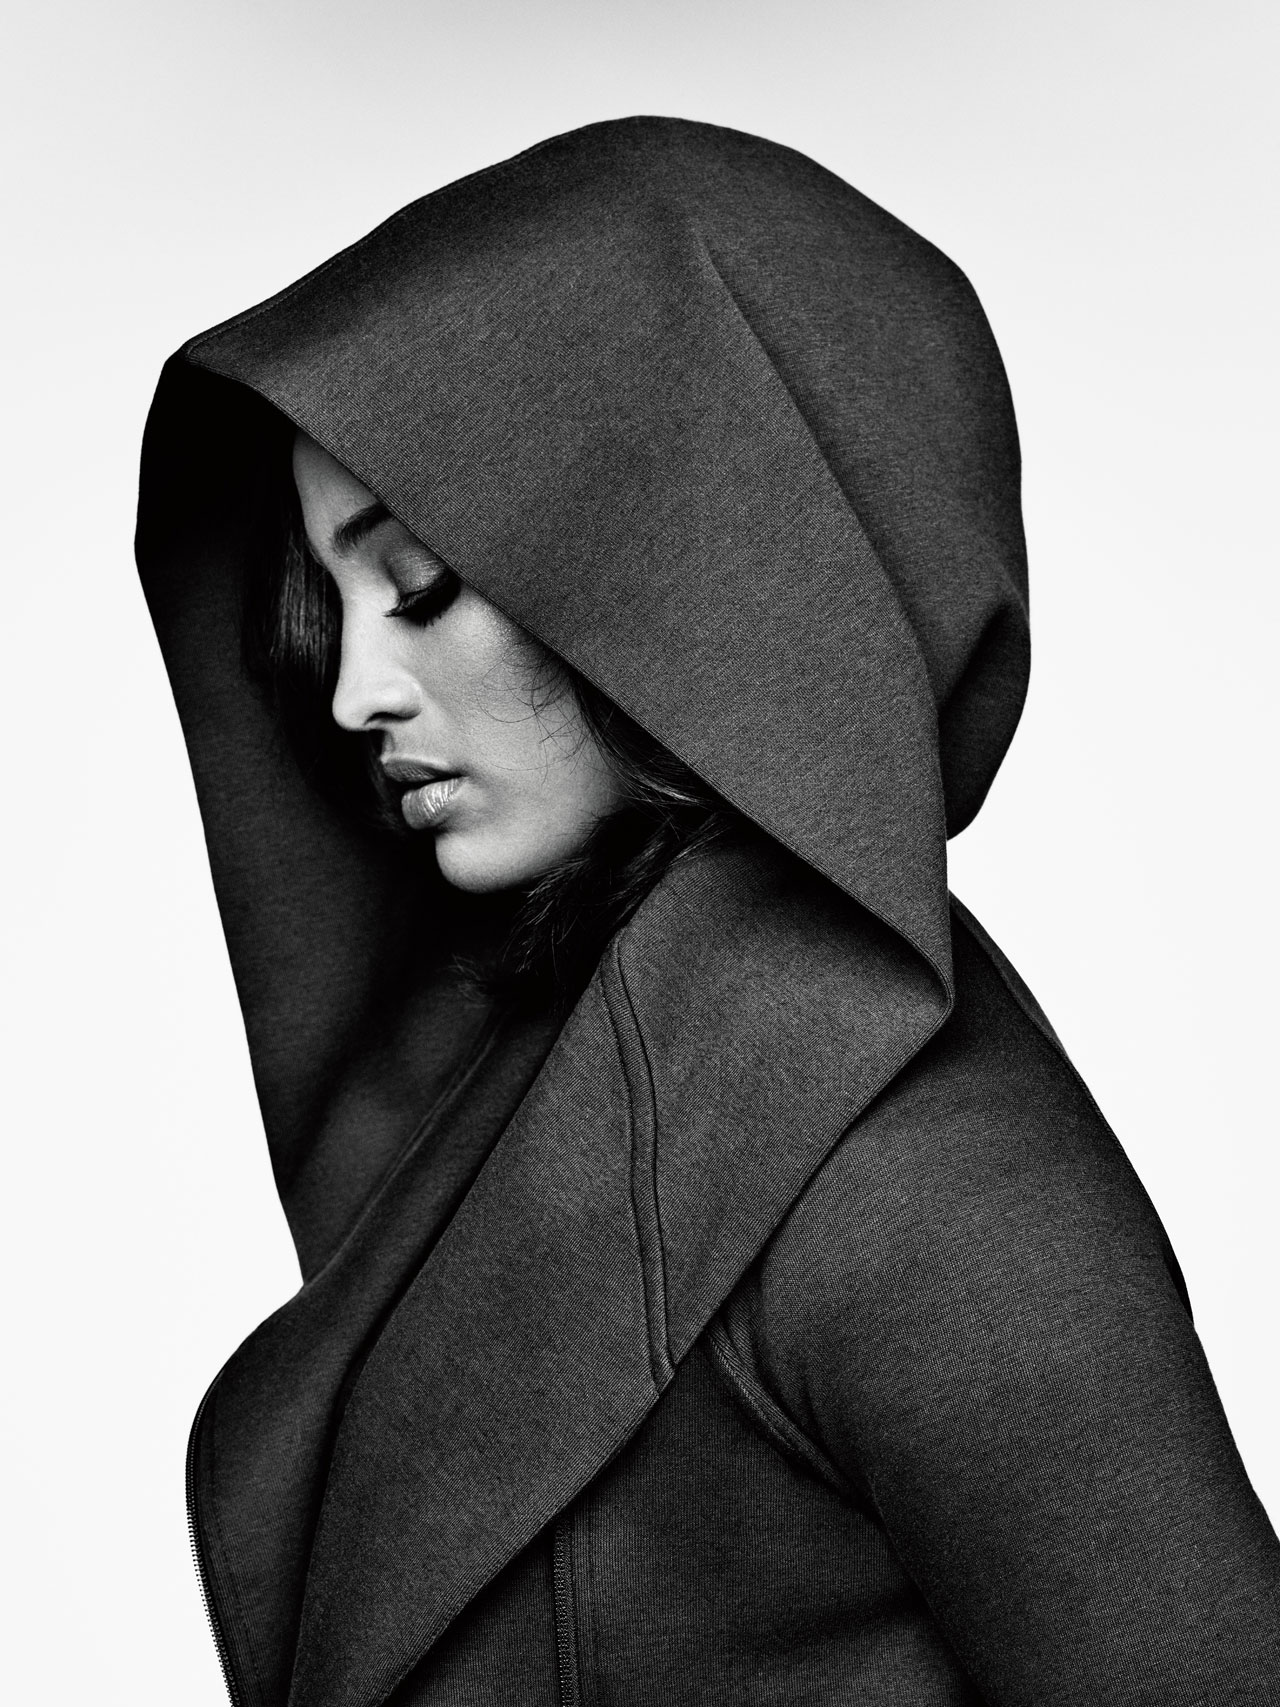 Skylar Diggins, photo © 2015 Nike, Inc.